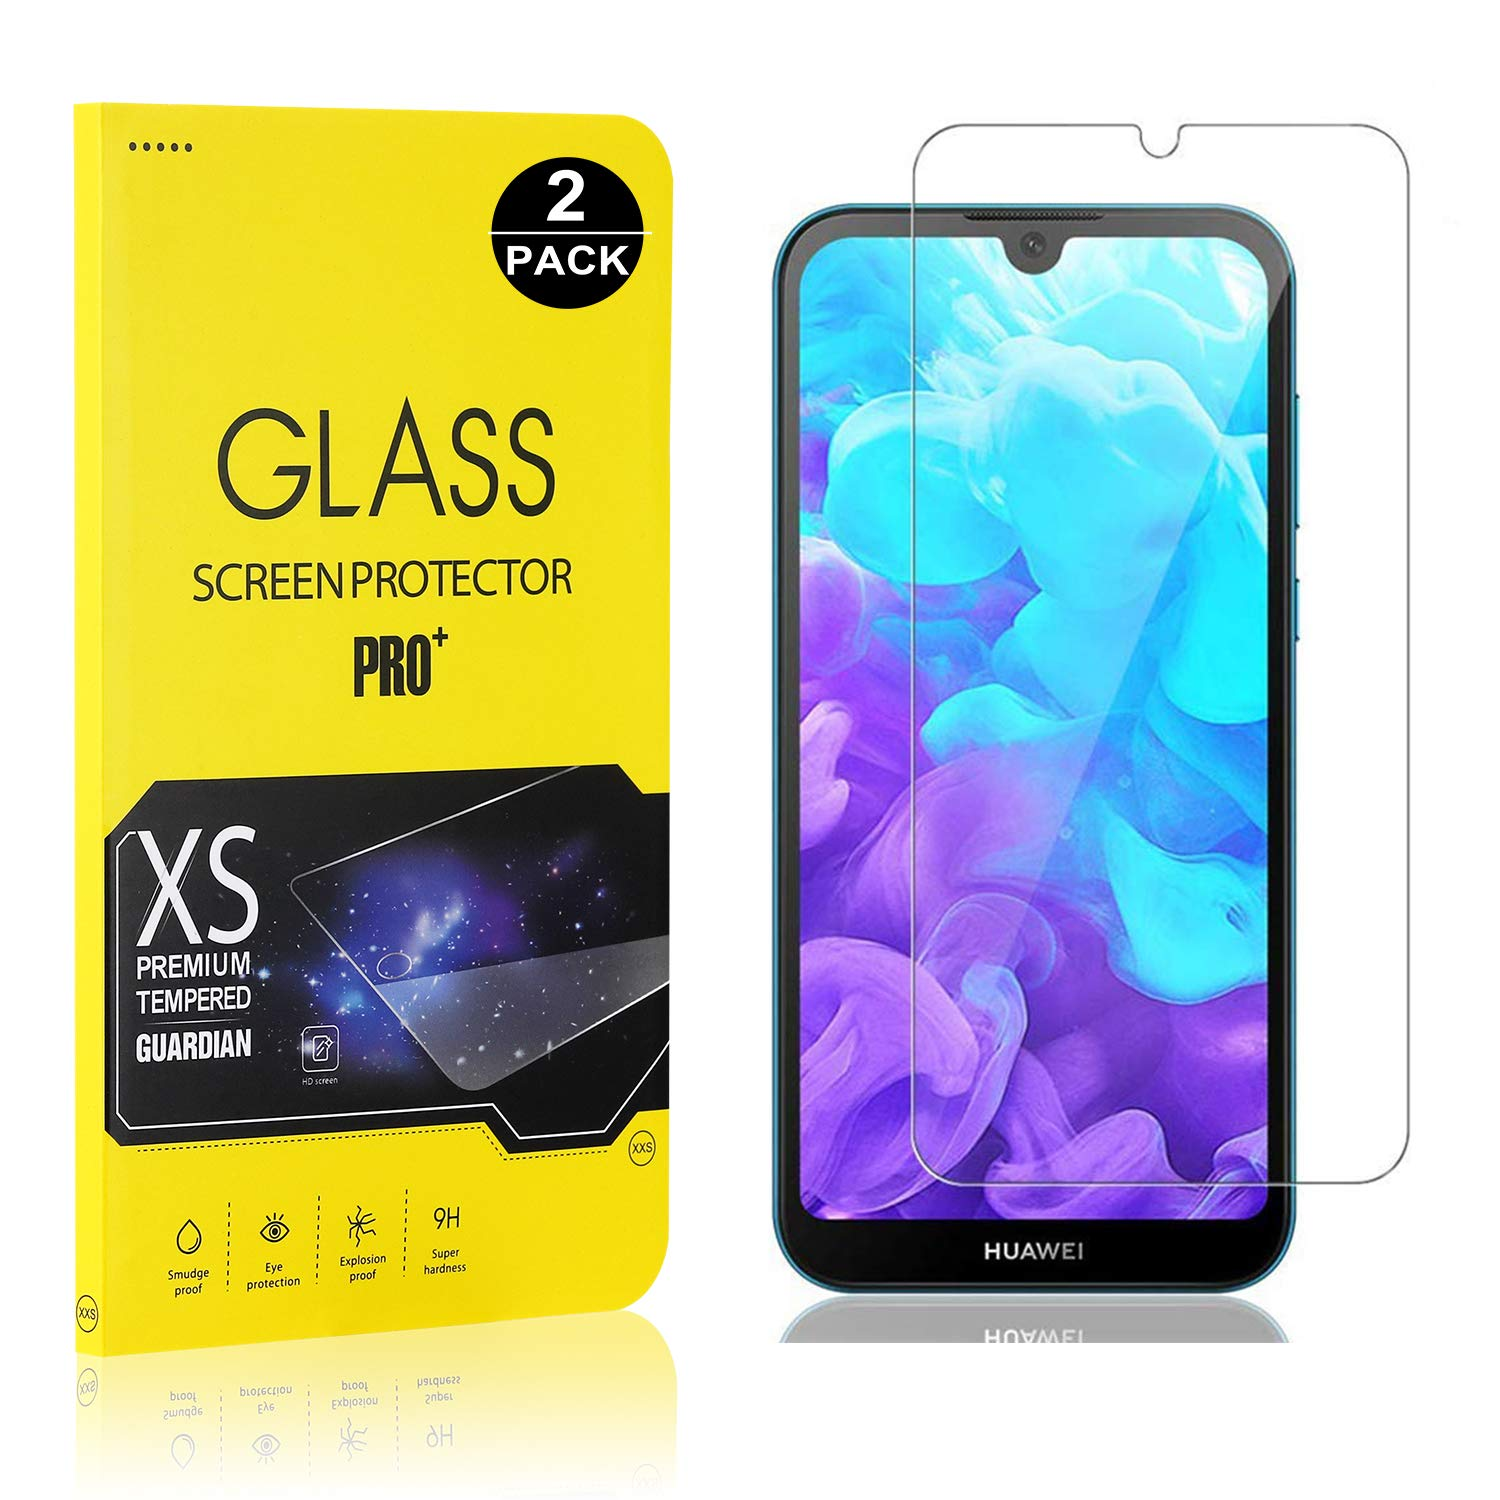 Screen Protector for Huawei Y5 2019 2 Pack Bear Village Tempered Glass Screen Protector 9H Hardness Screen Protector Film for Huawei Y5 2019